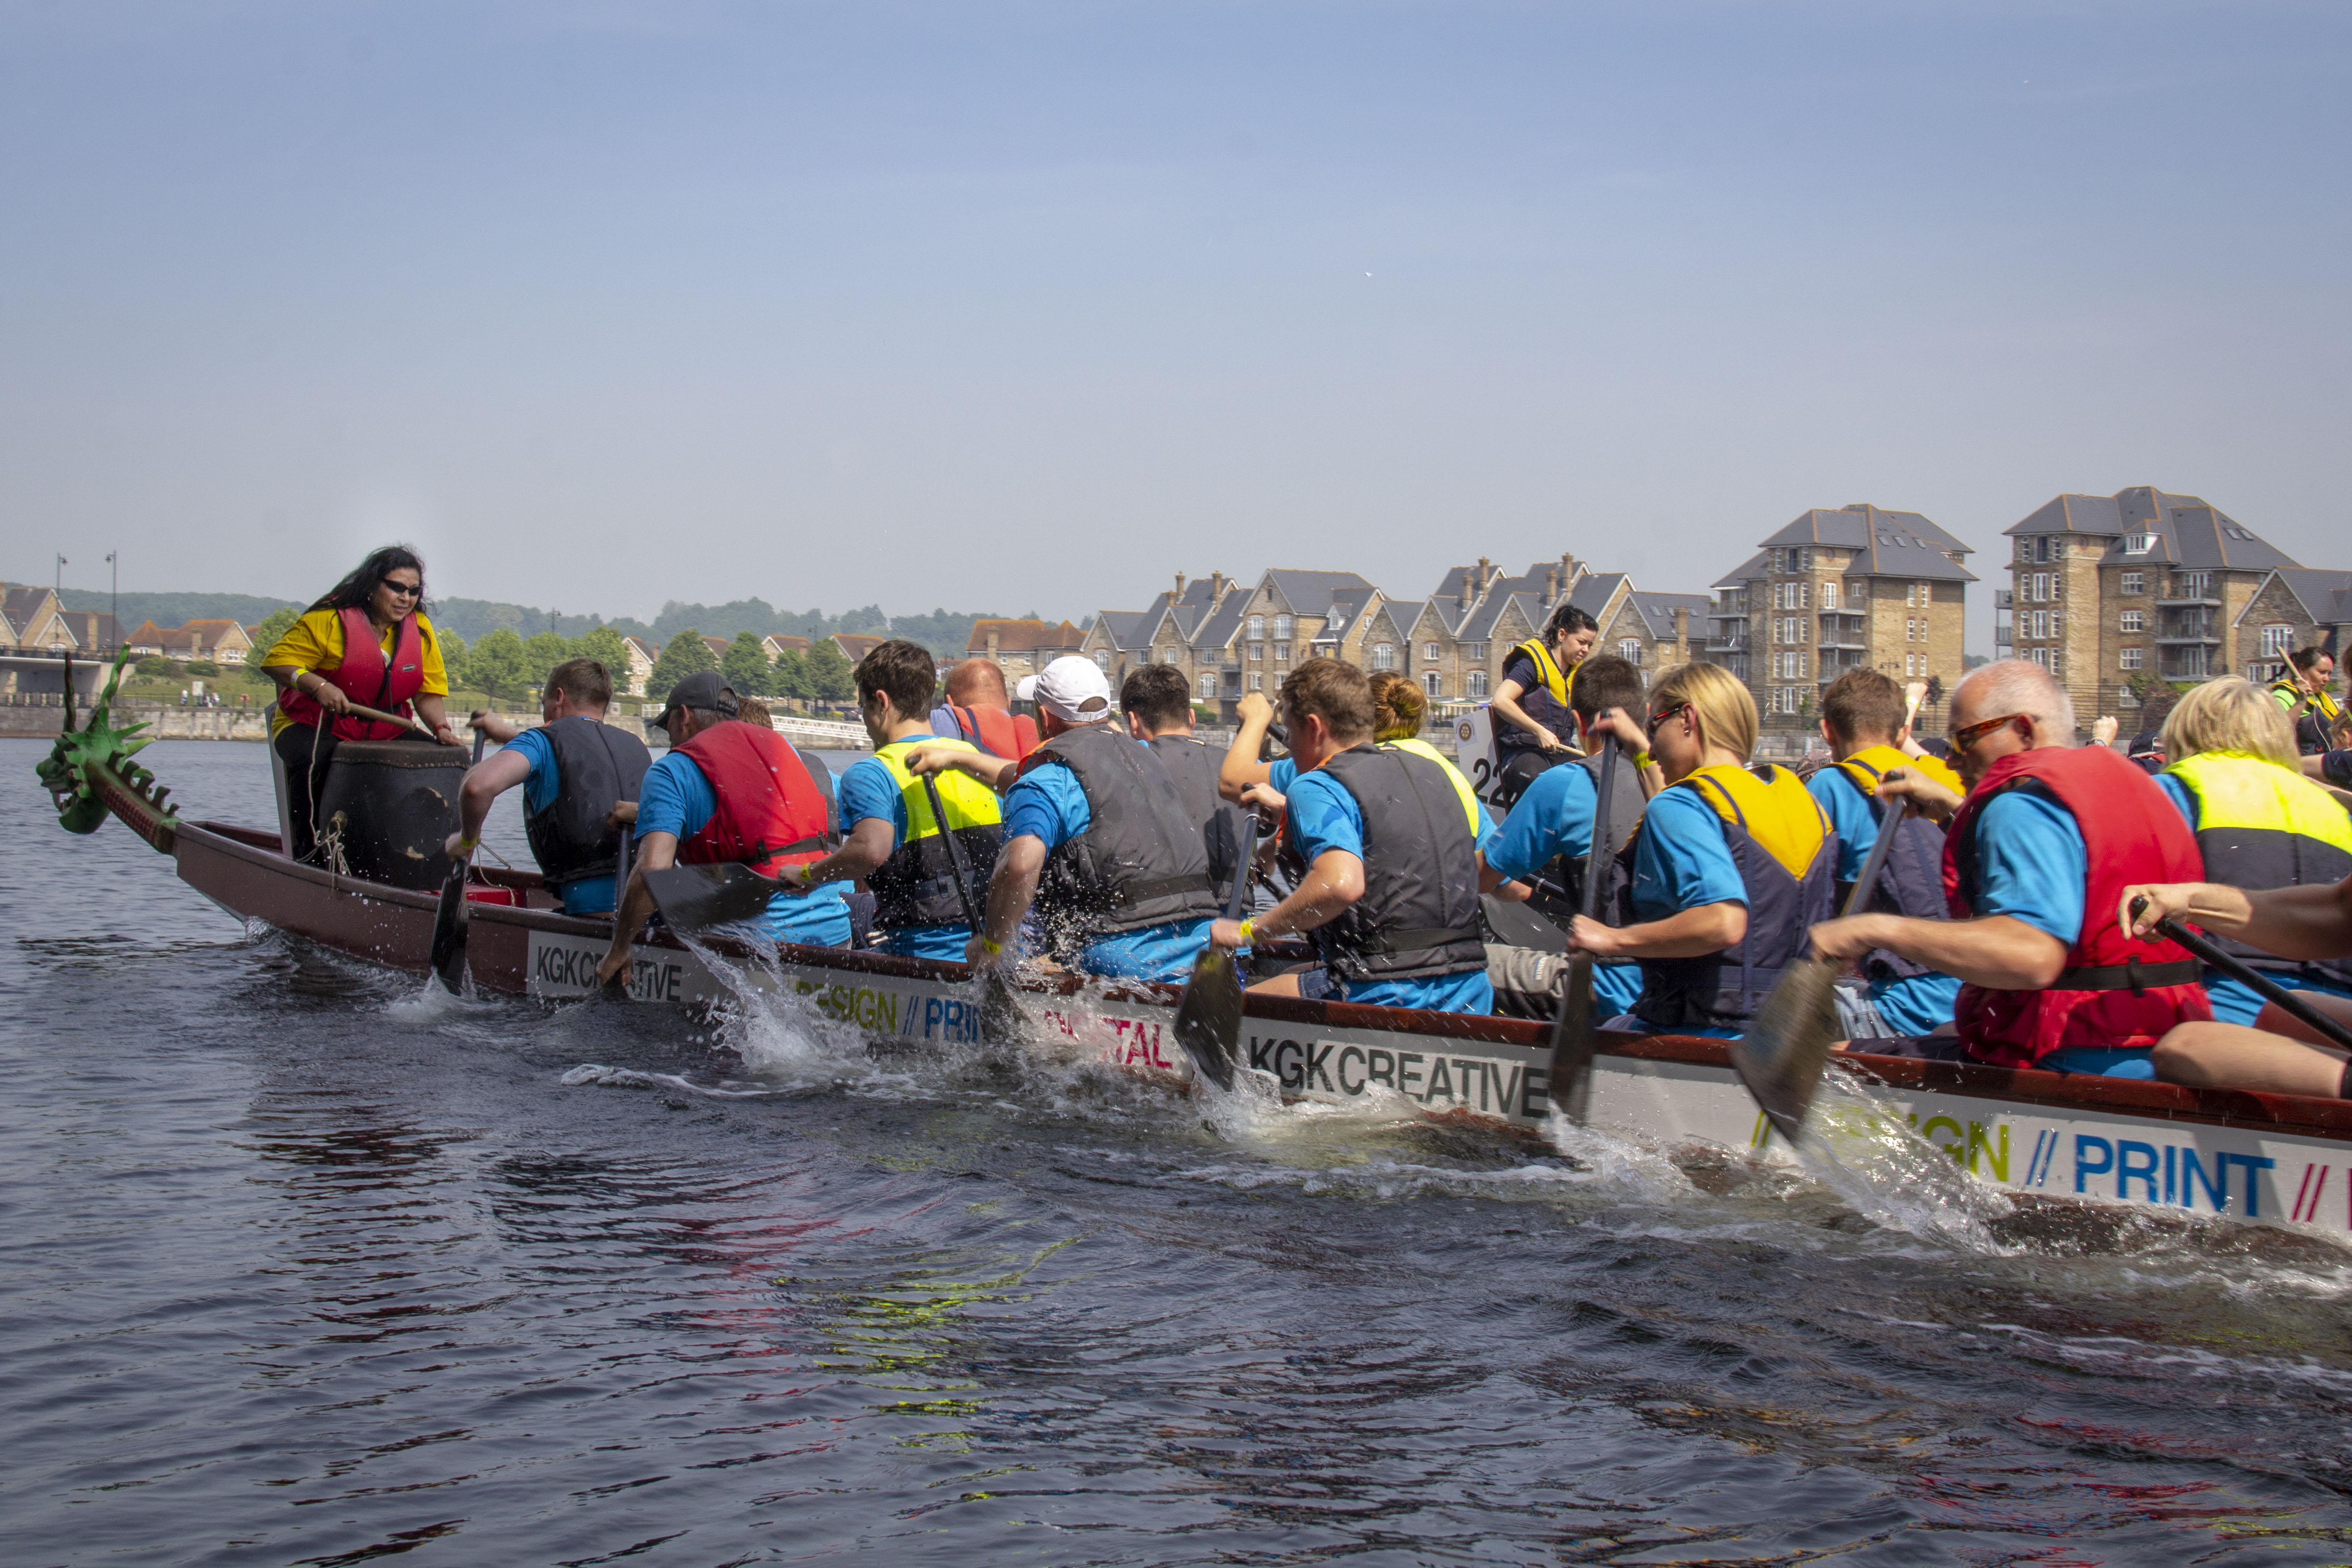 2018 Dragon Boat Challenge photos - 270518 60D 2436 Edited